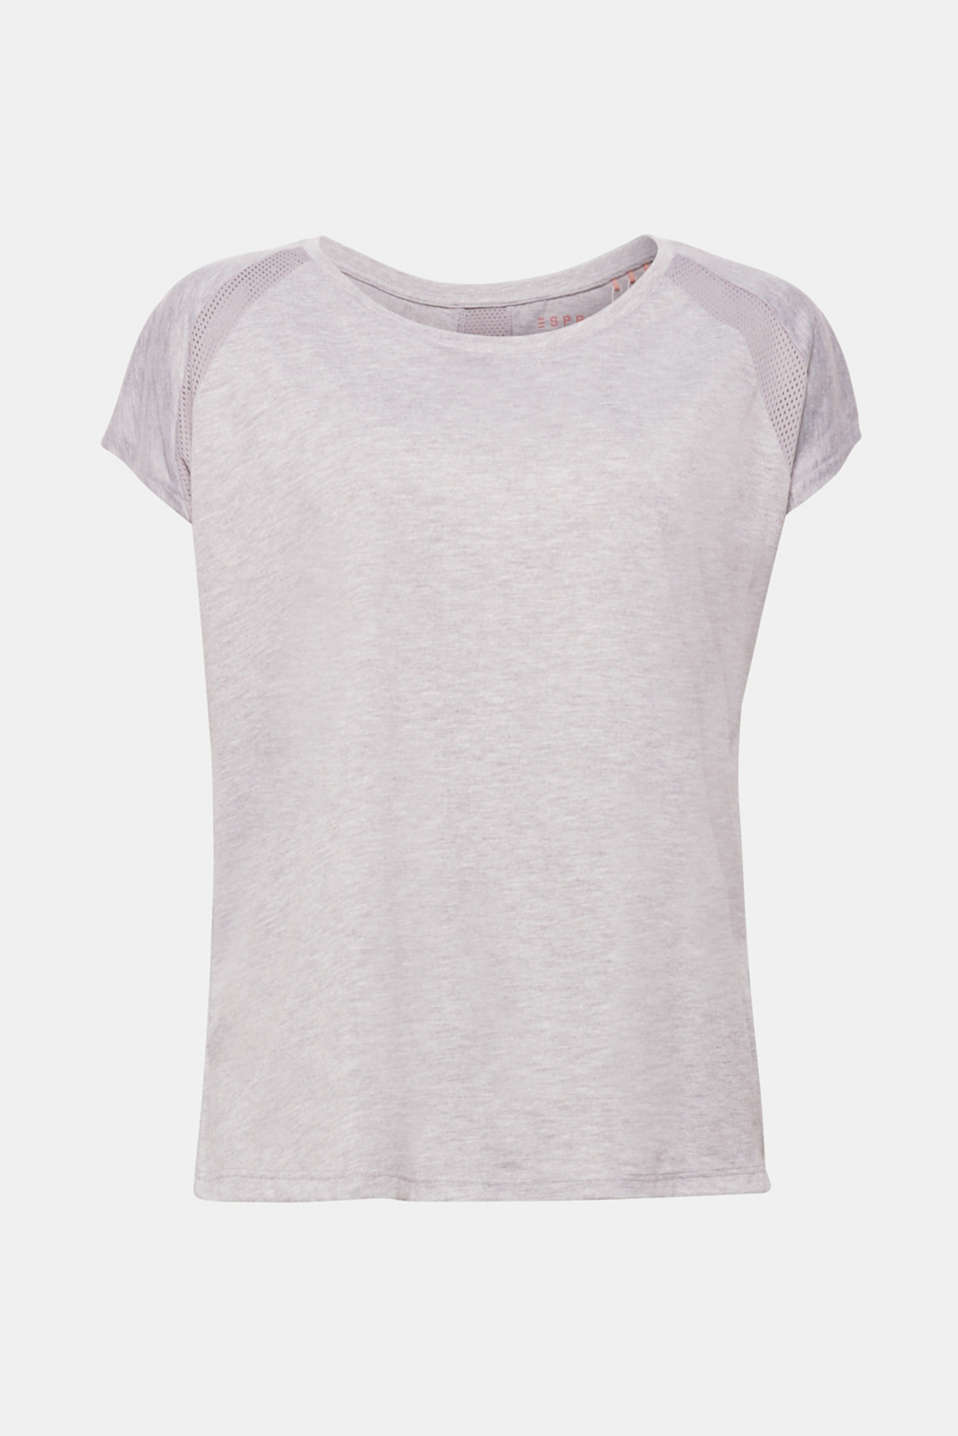 Lightweight, soft and airy, the mottled jersey and mesh inserts on the sleeves and the back give this top its sporty look!